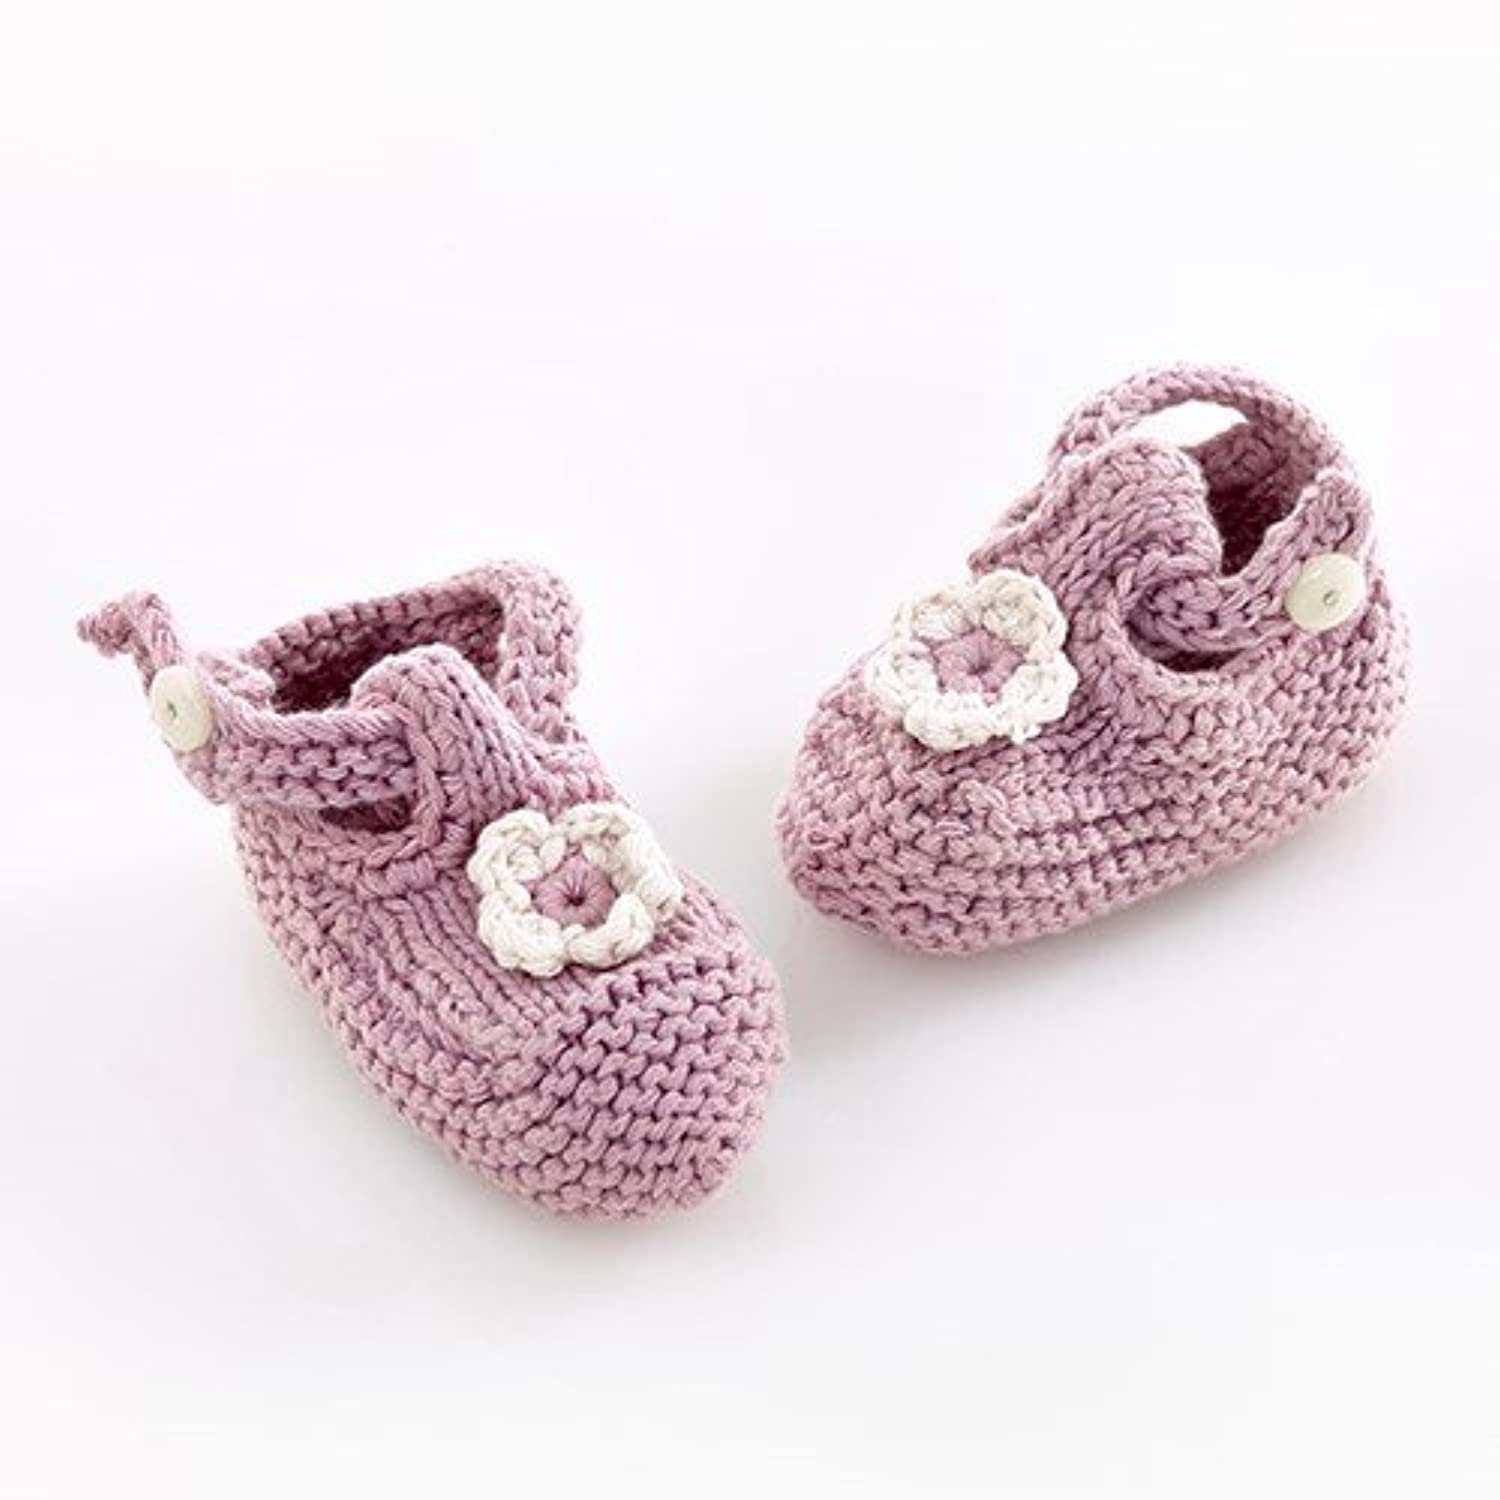 Pebble Child Rag doll - Organic Pink Shoes